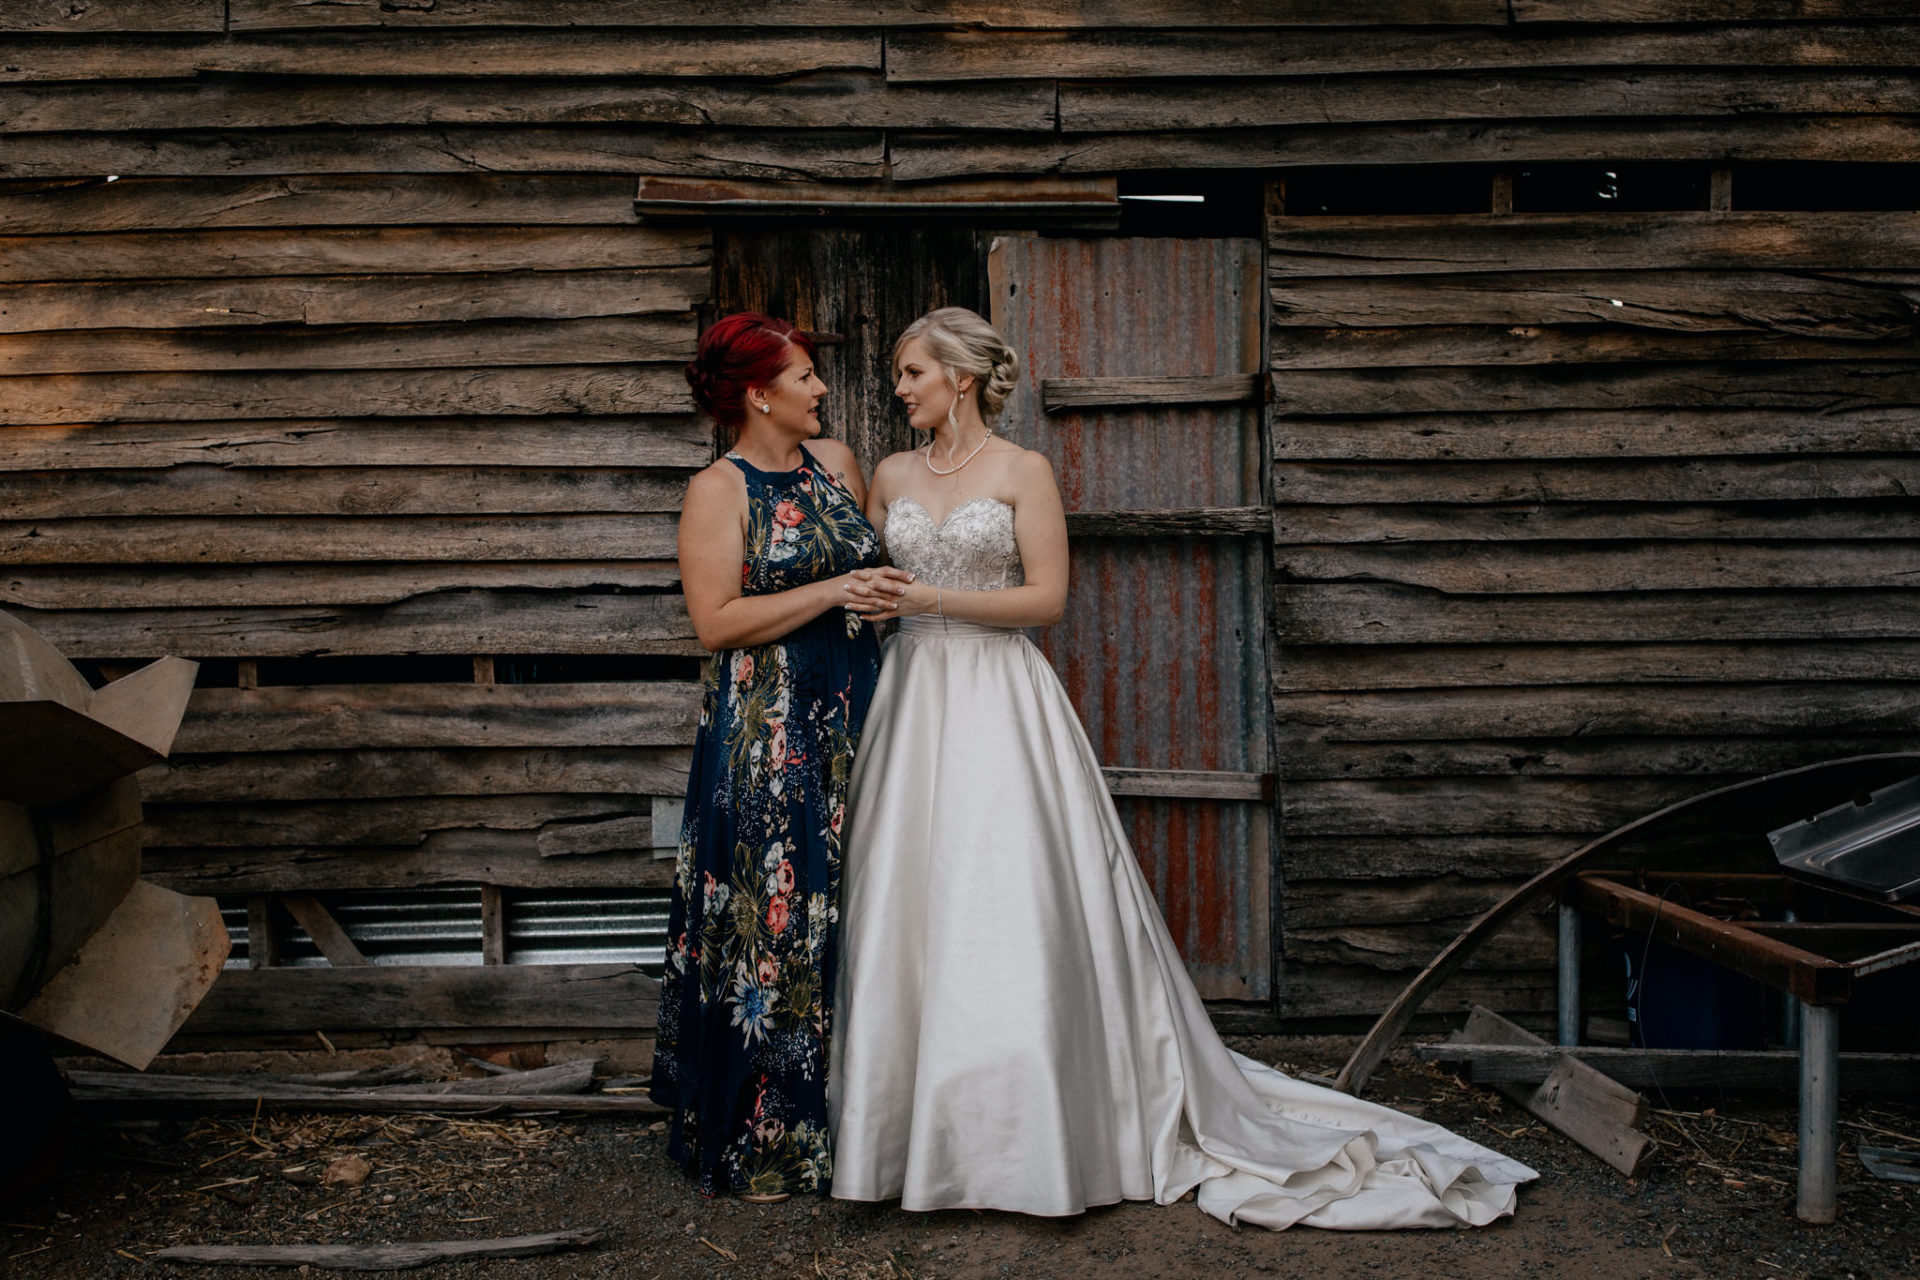 backyard-wedding-australia-melbourne-bride-bridesmaid-portrait-bridal-party